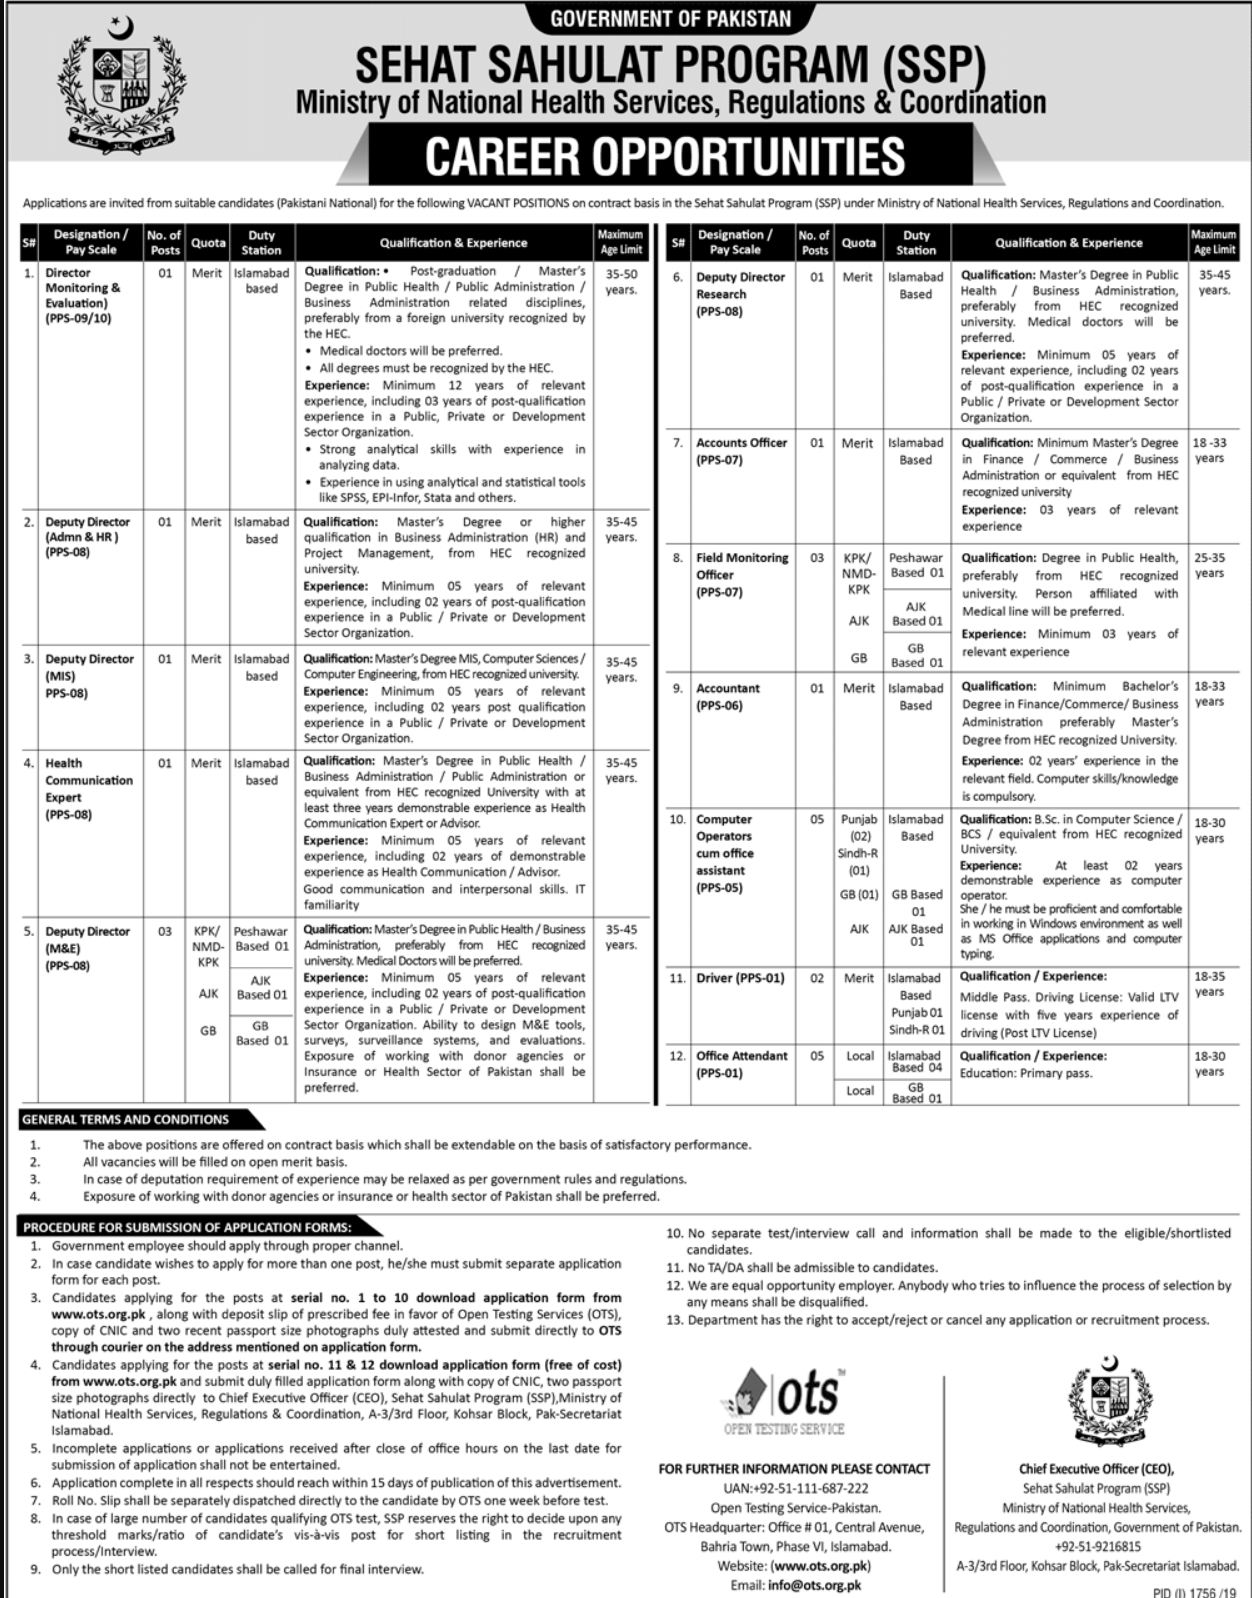 Sehat Sahulat Program NHSRC Jobs 2019 OTS Application Form Roll No Slip